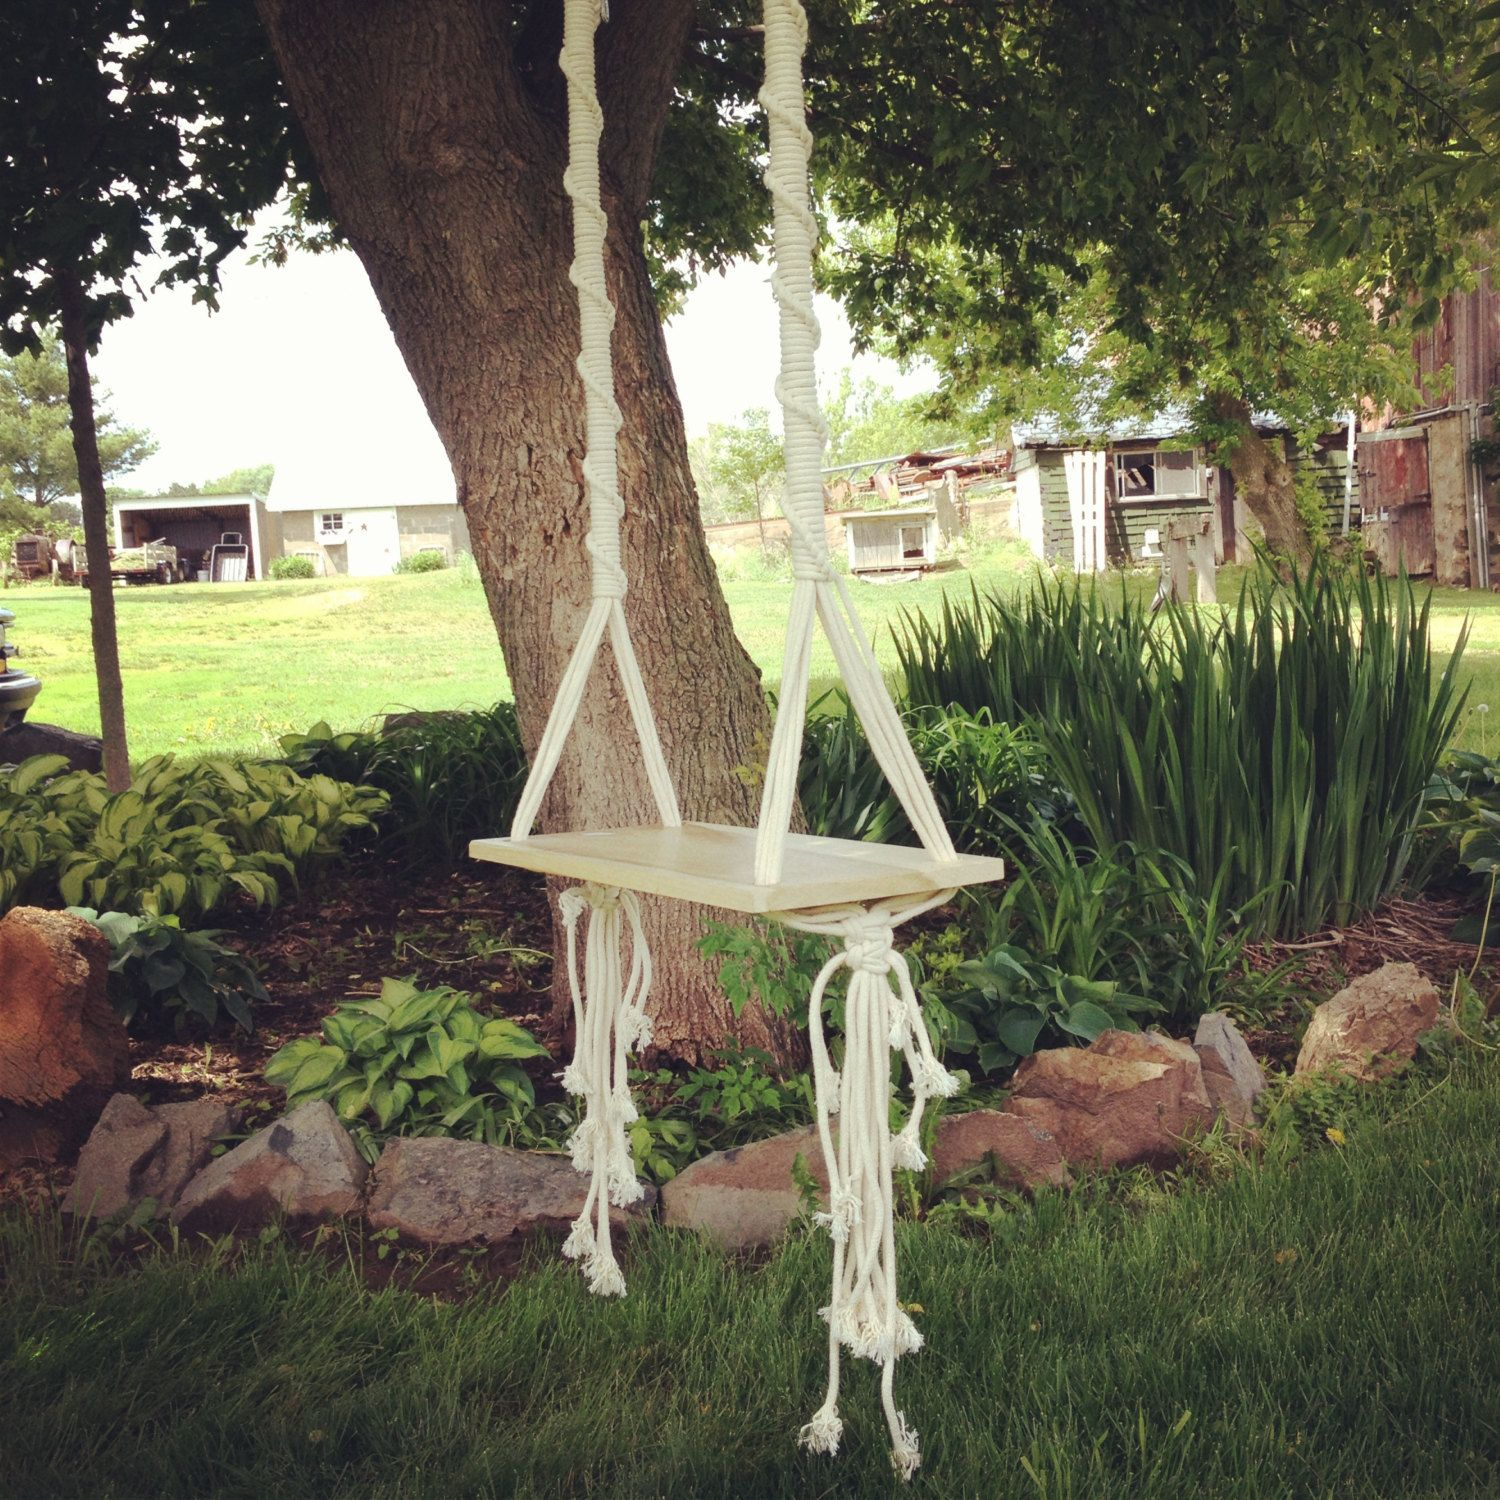 Tree Swing // Macrame Swing By Thethrowbackdaze On Etsy